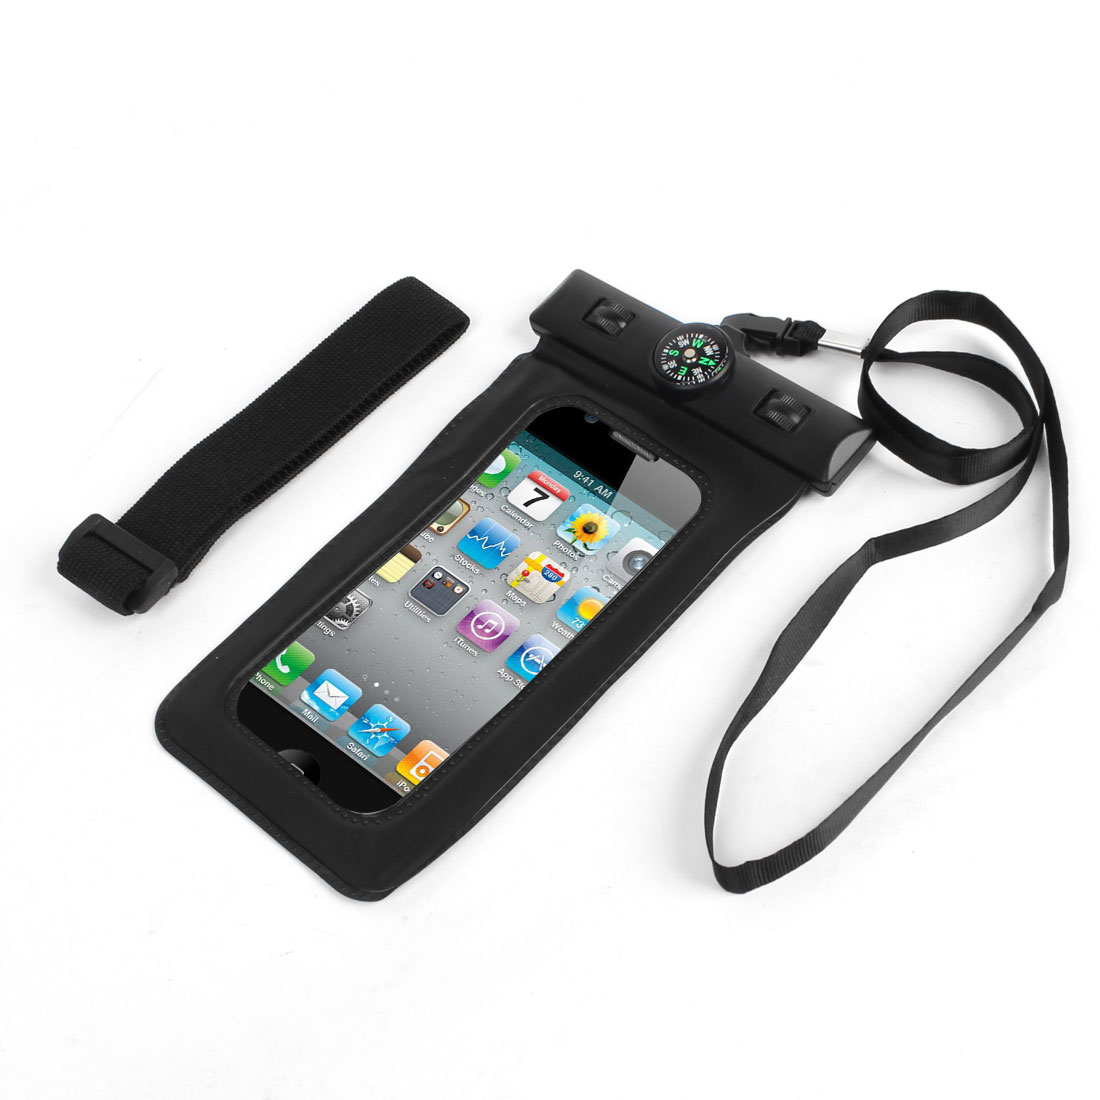 Black Compass Waterproof Protector Case Cover for Phone MP4